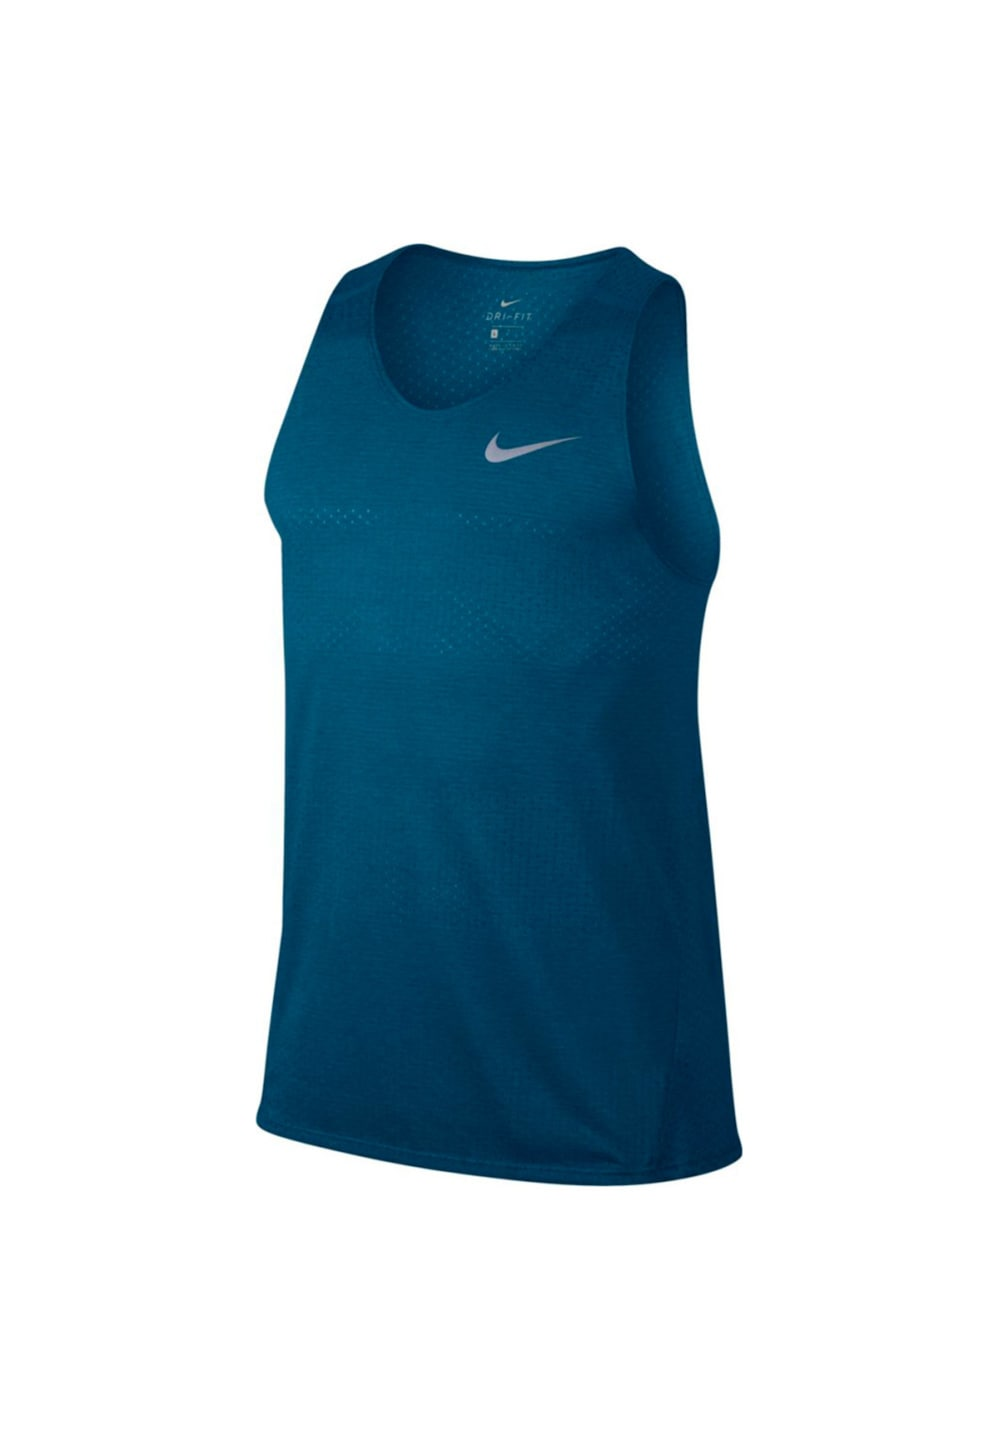 f313a40005877 ... Nike Breathe Running Tank - Running tops for Men - Blue. Back to  Overview. 1  2. Previous